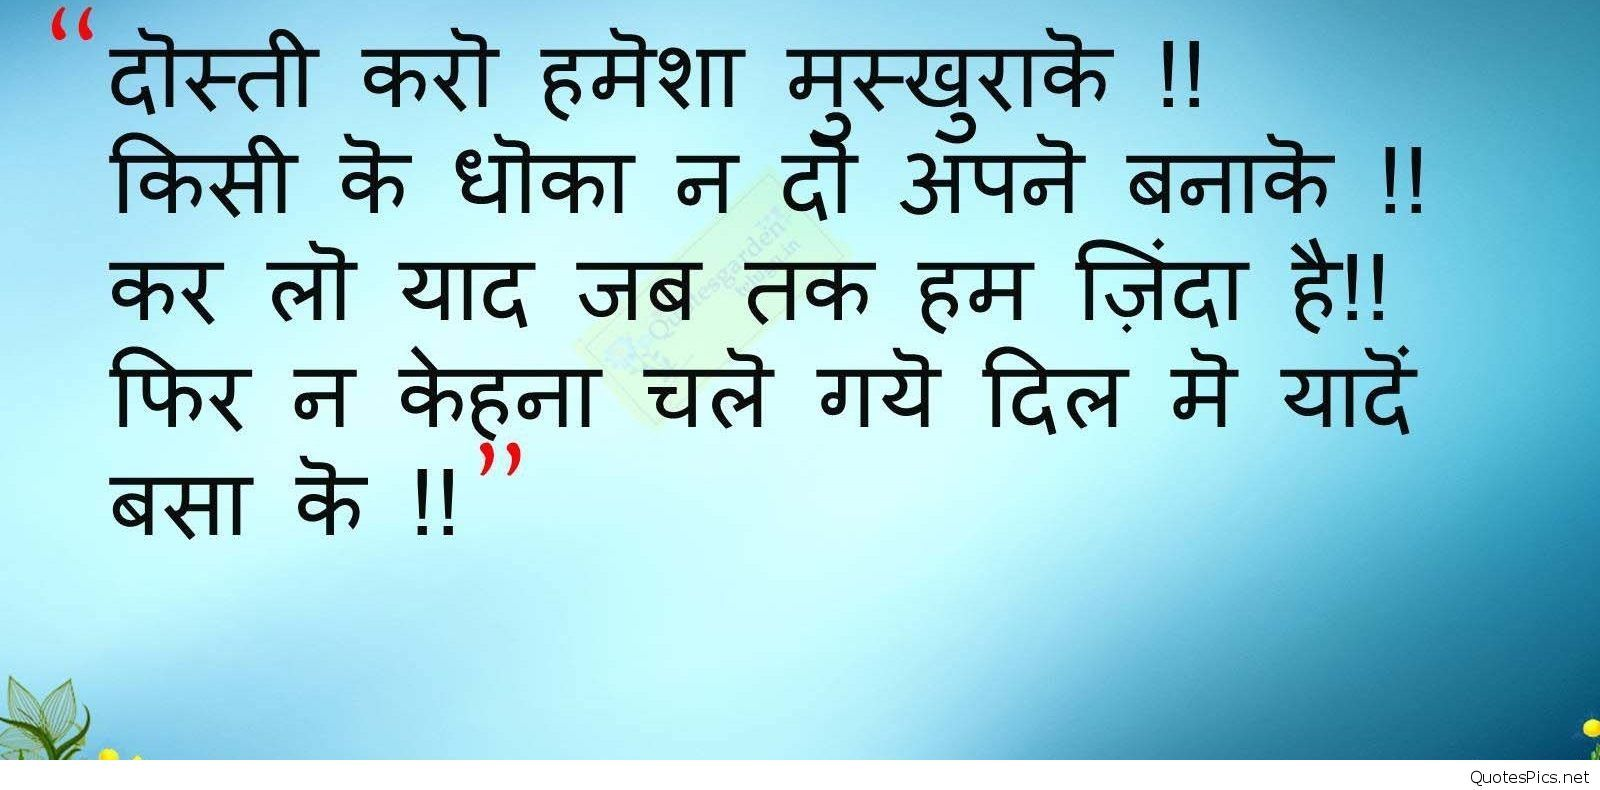 Friendship Day Quotes In Hindi Friendship Day Quotes Famous